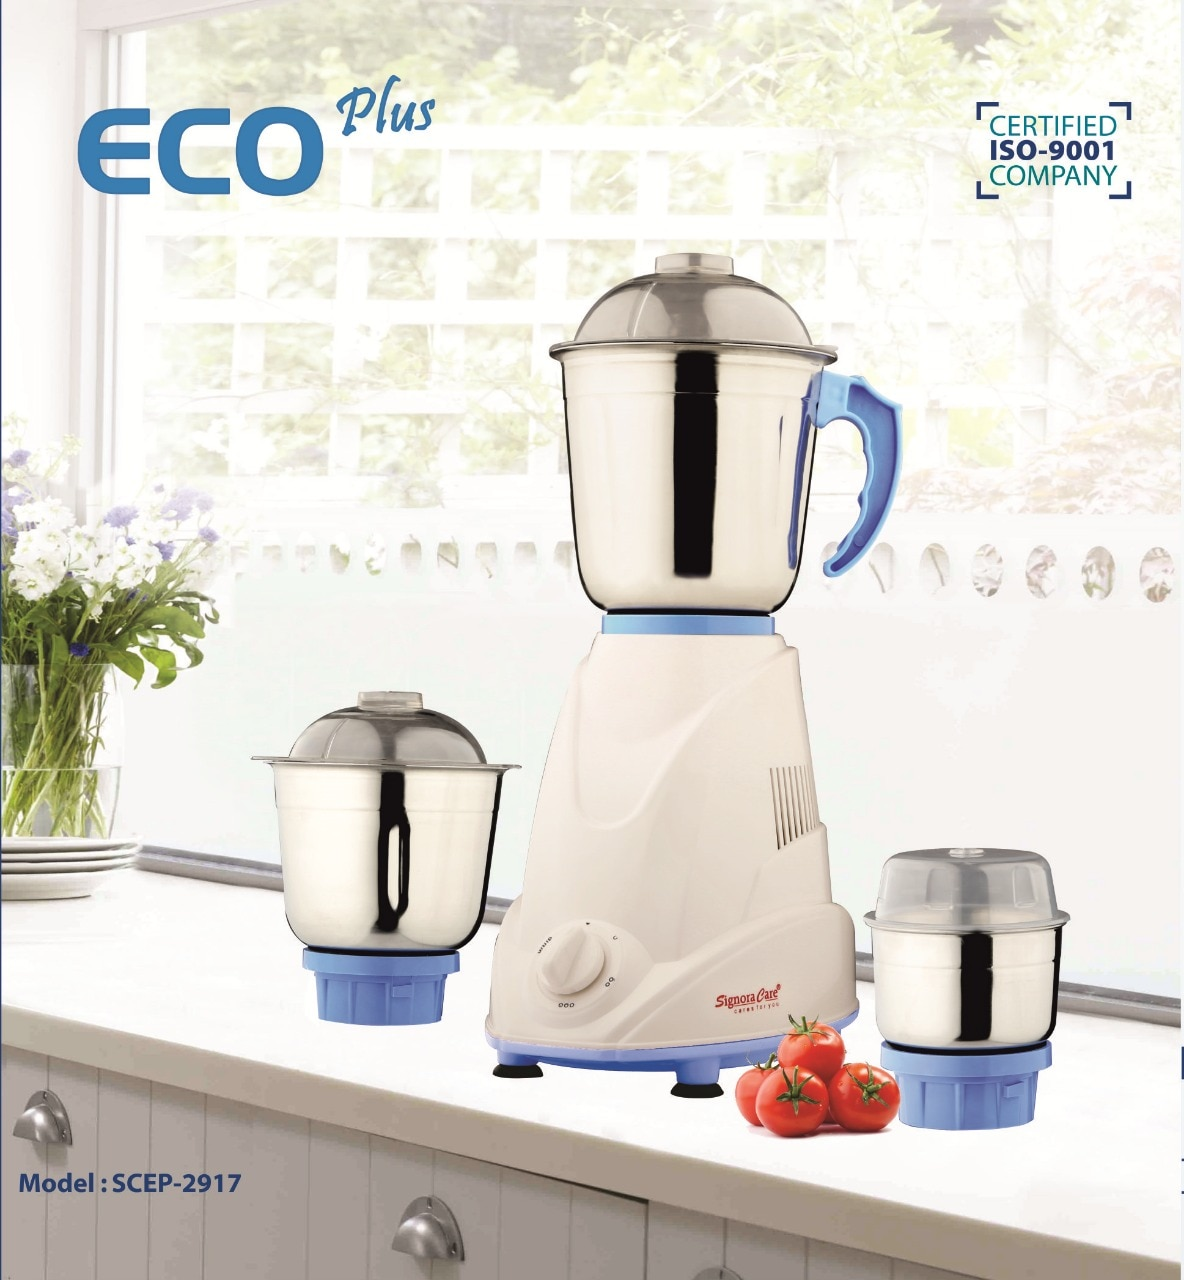 SignoraCare Eco Plus 500 W Mixer Grinder (White & Blue/3 Jar)